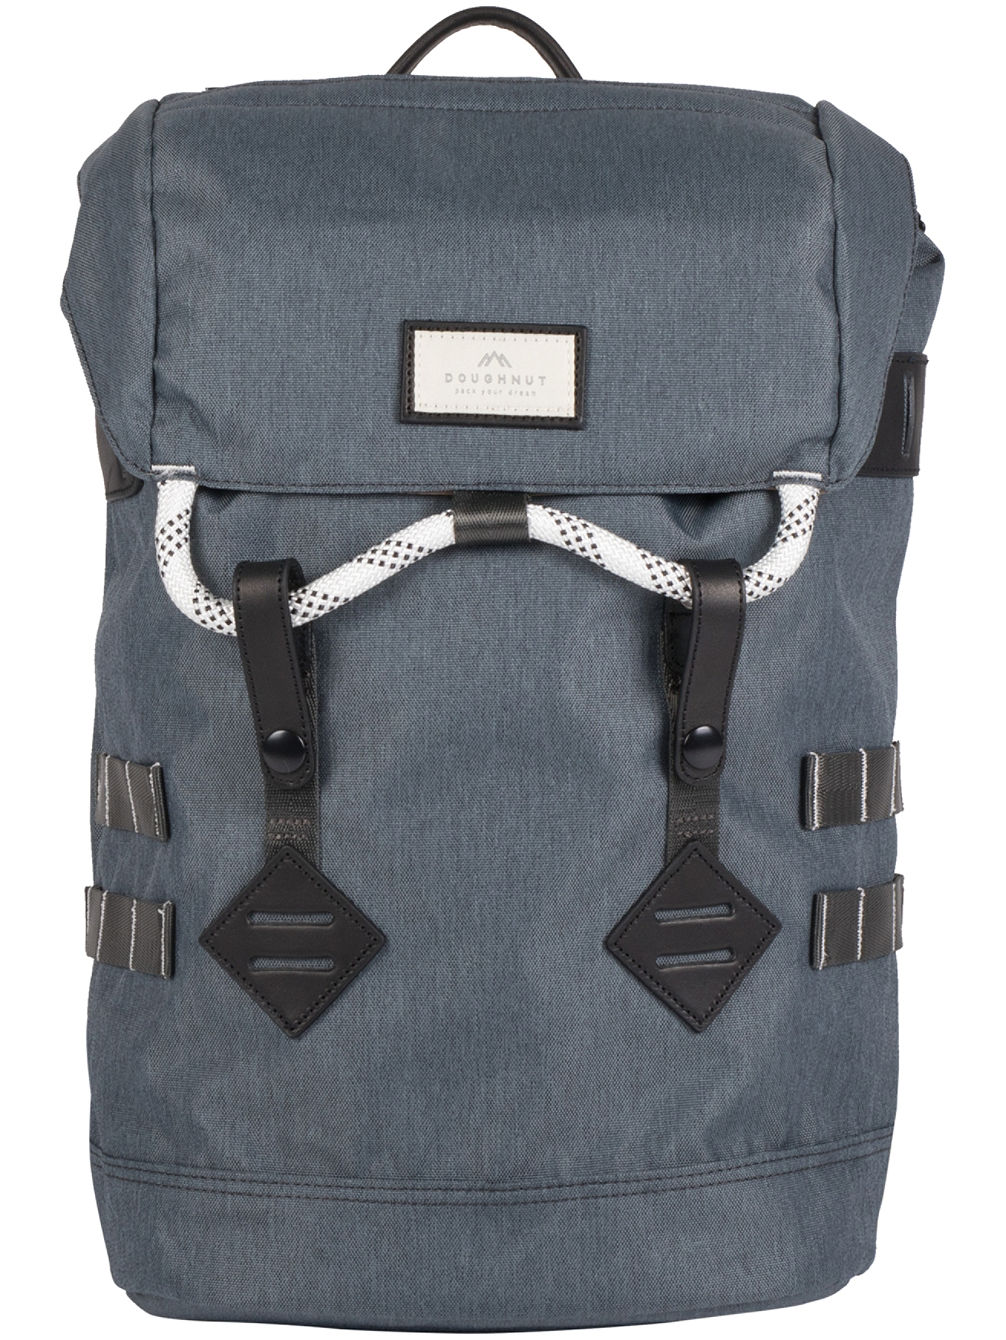 Colorado Small Accents Series Rucksack